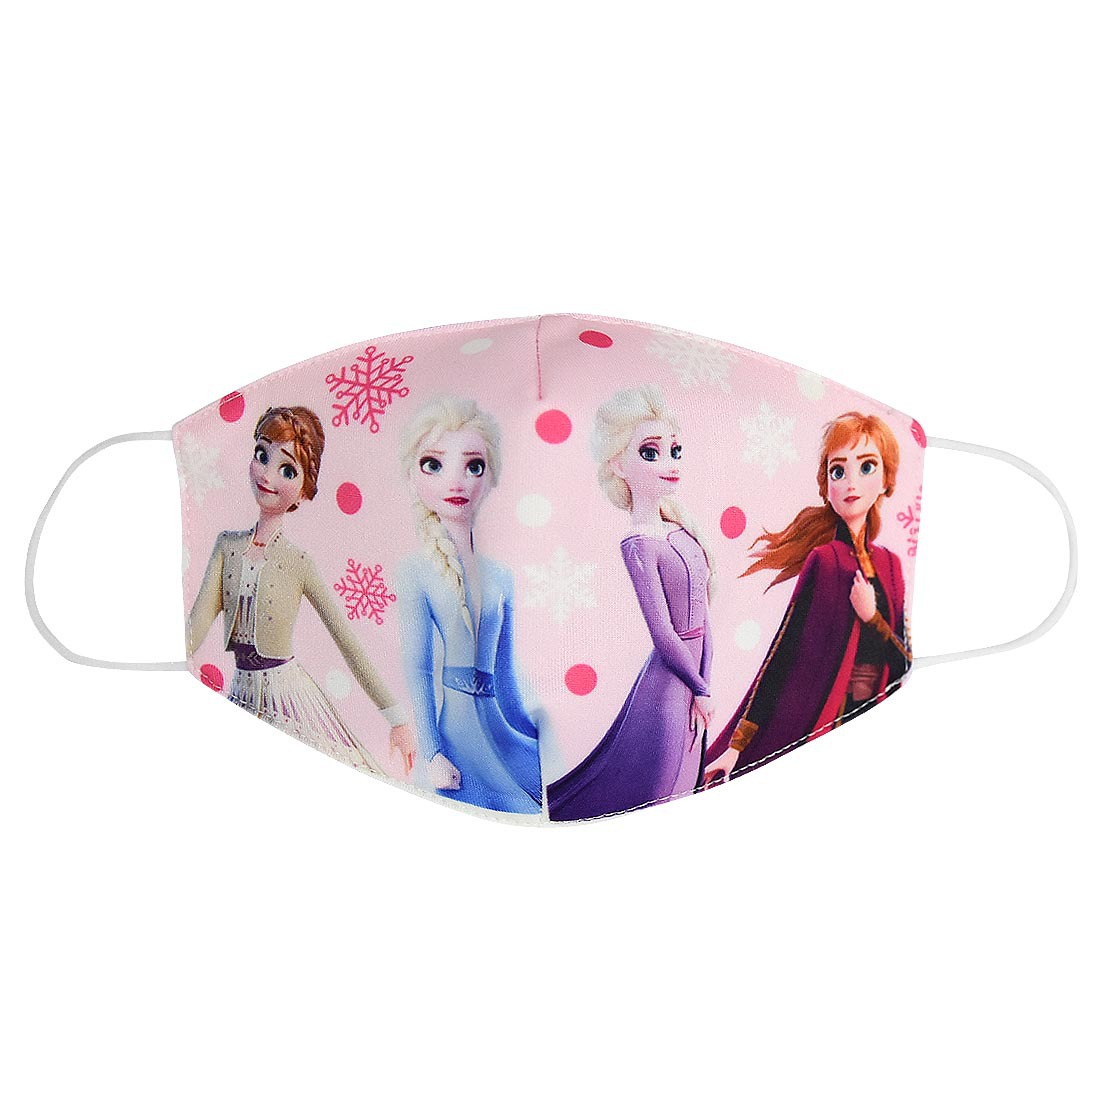 Cartoon Print Boys Girls Dustproof Printed Masks For Adult And Kids Face Mouth Mask 9